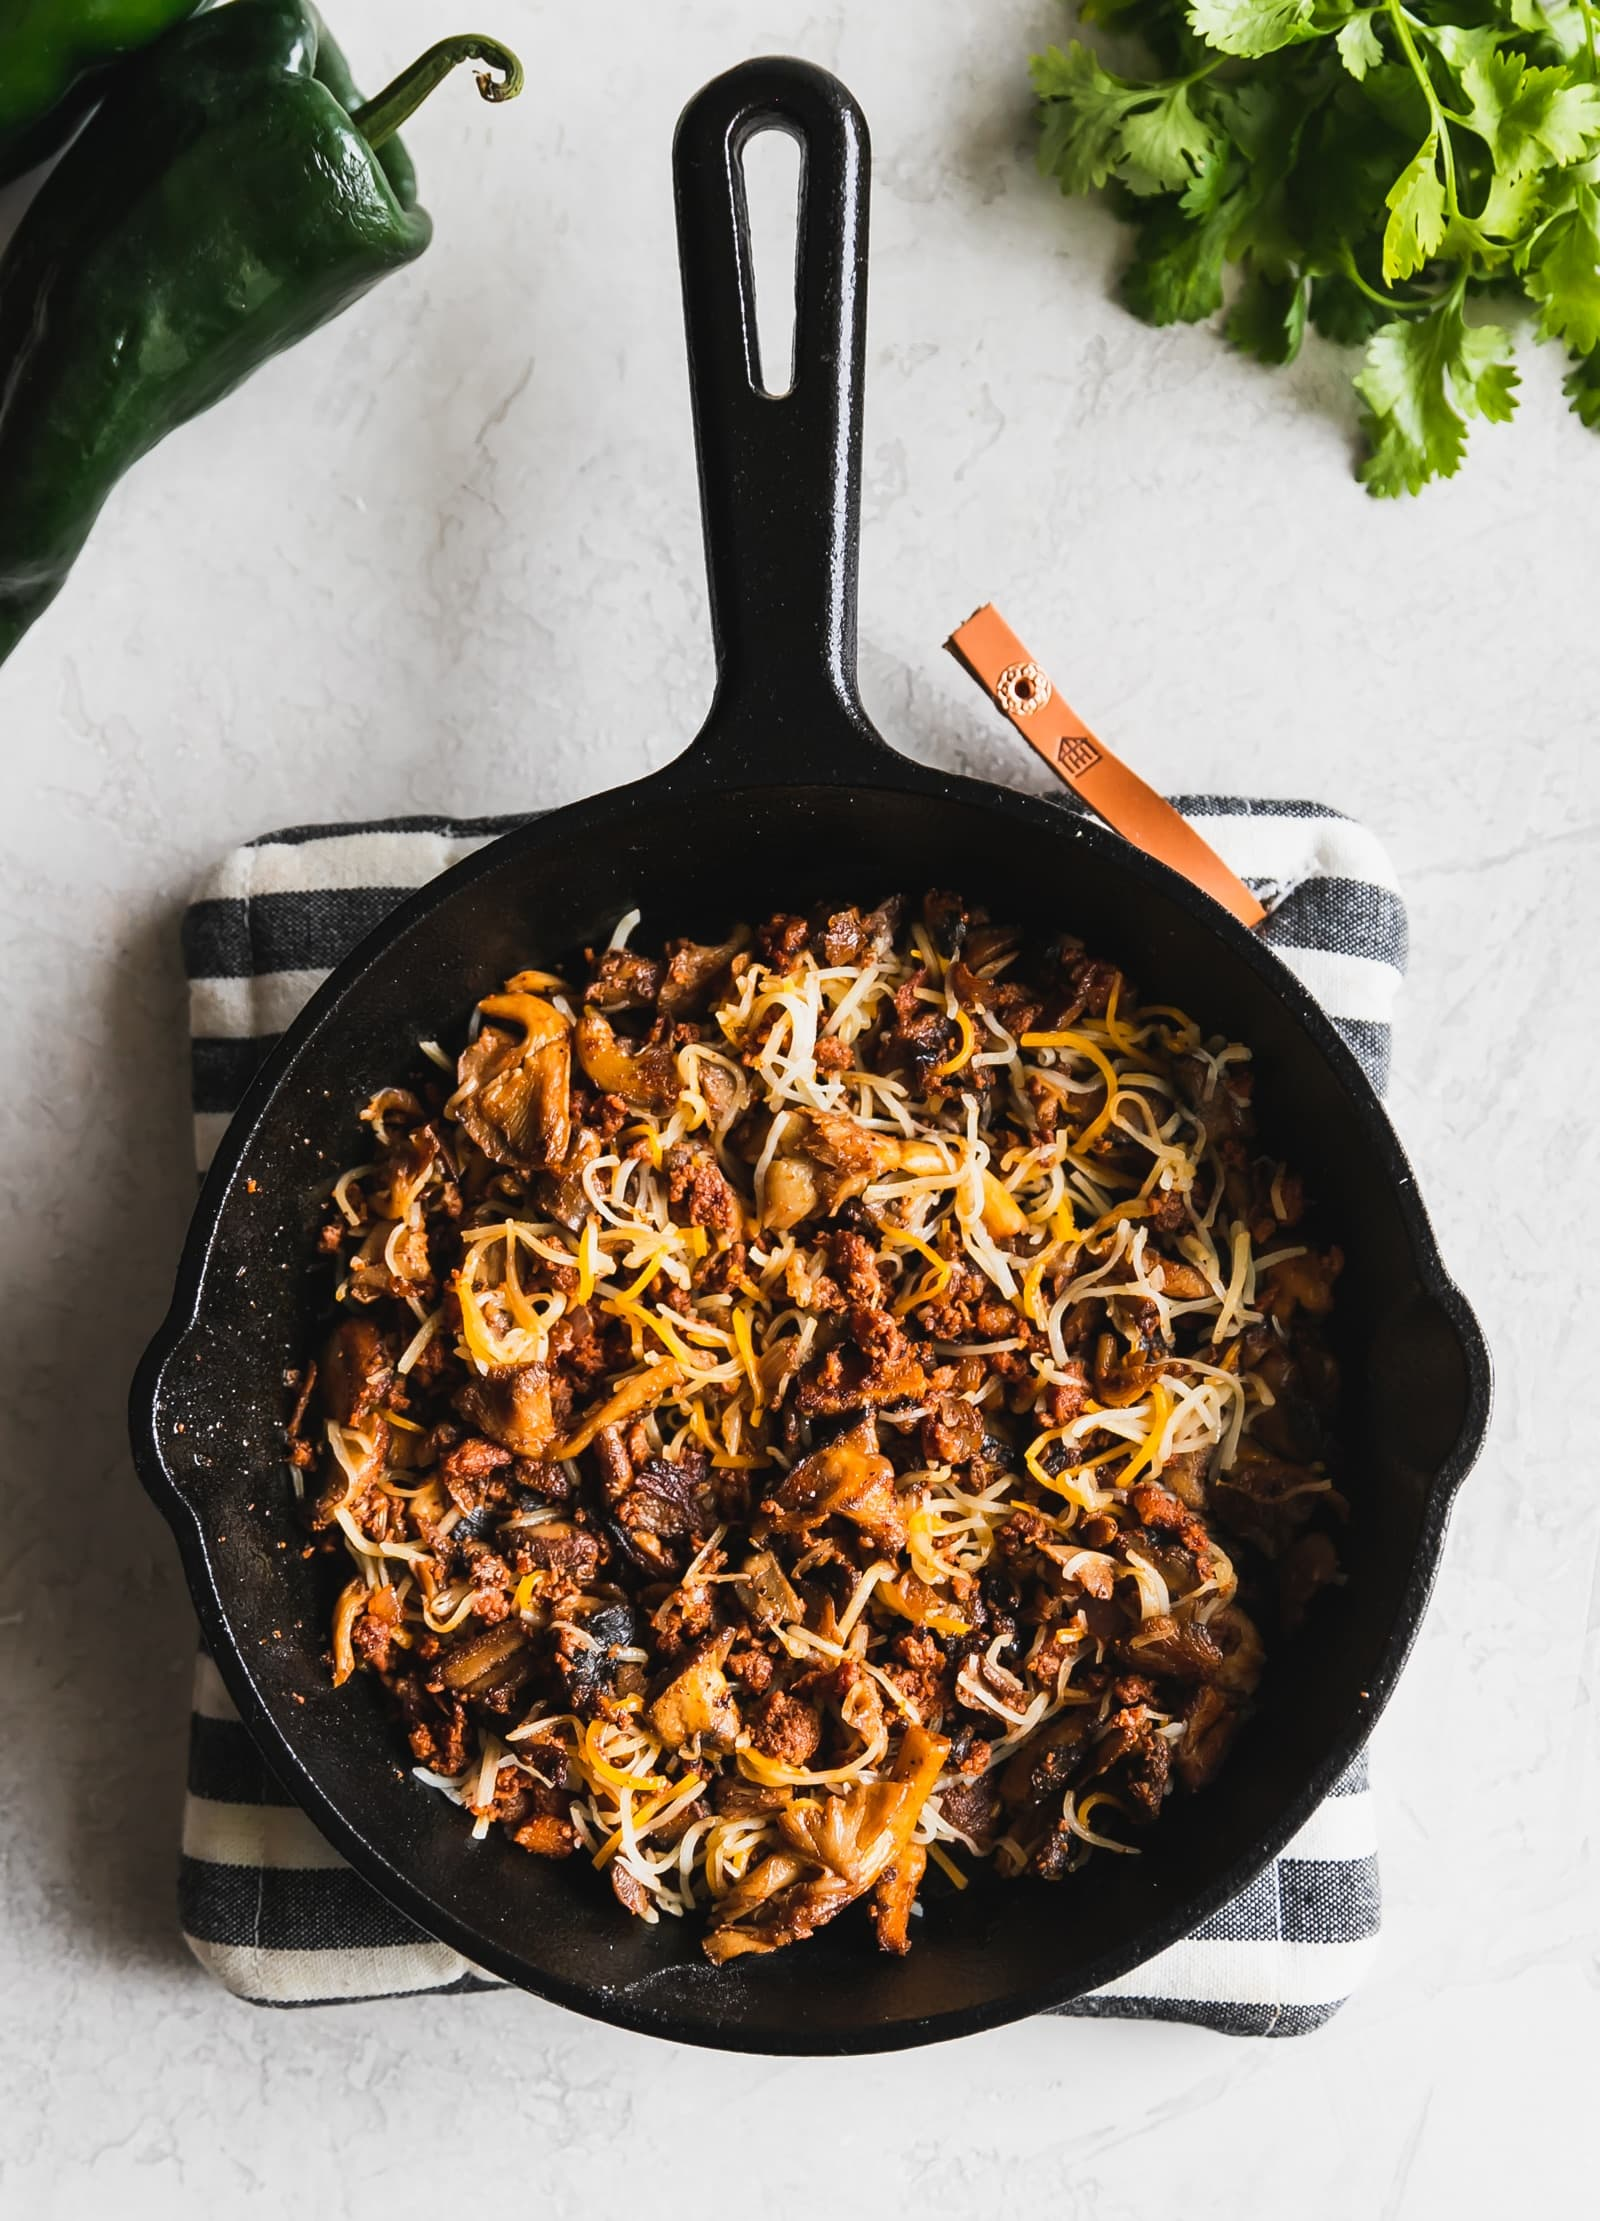 chorizo and mushrooms in a cast iron skillet